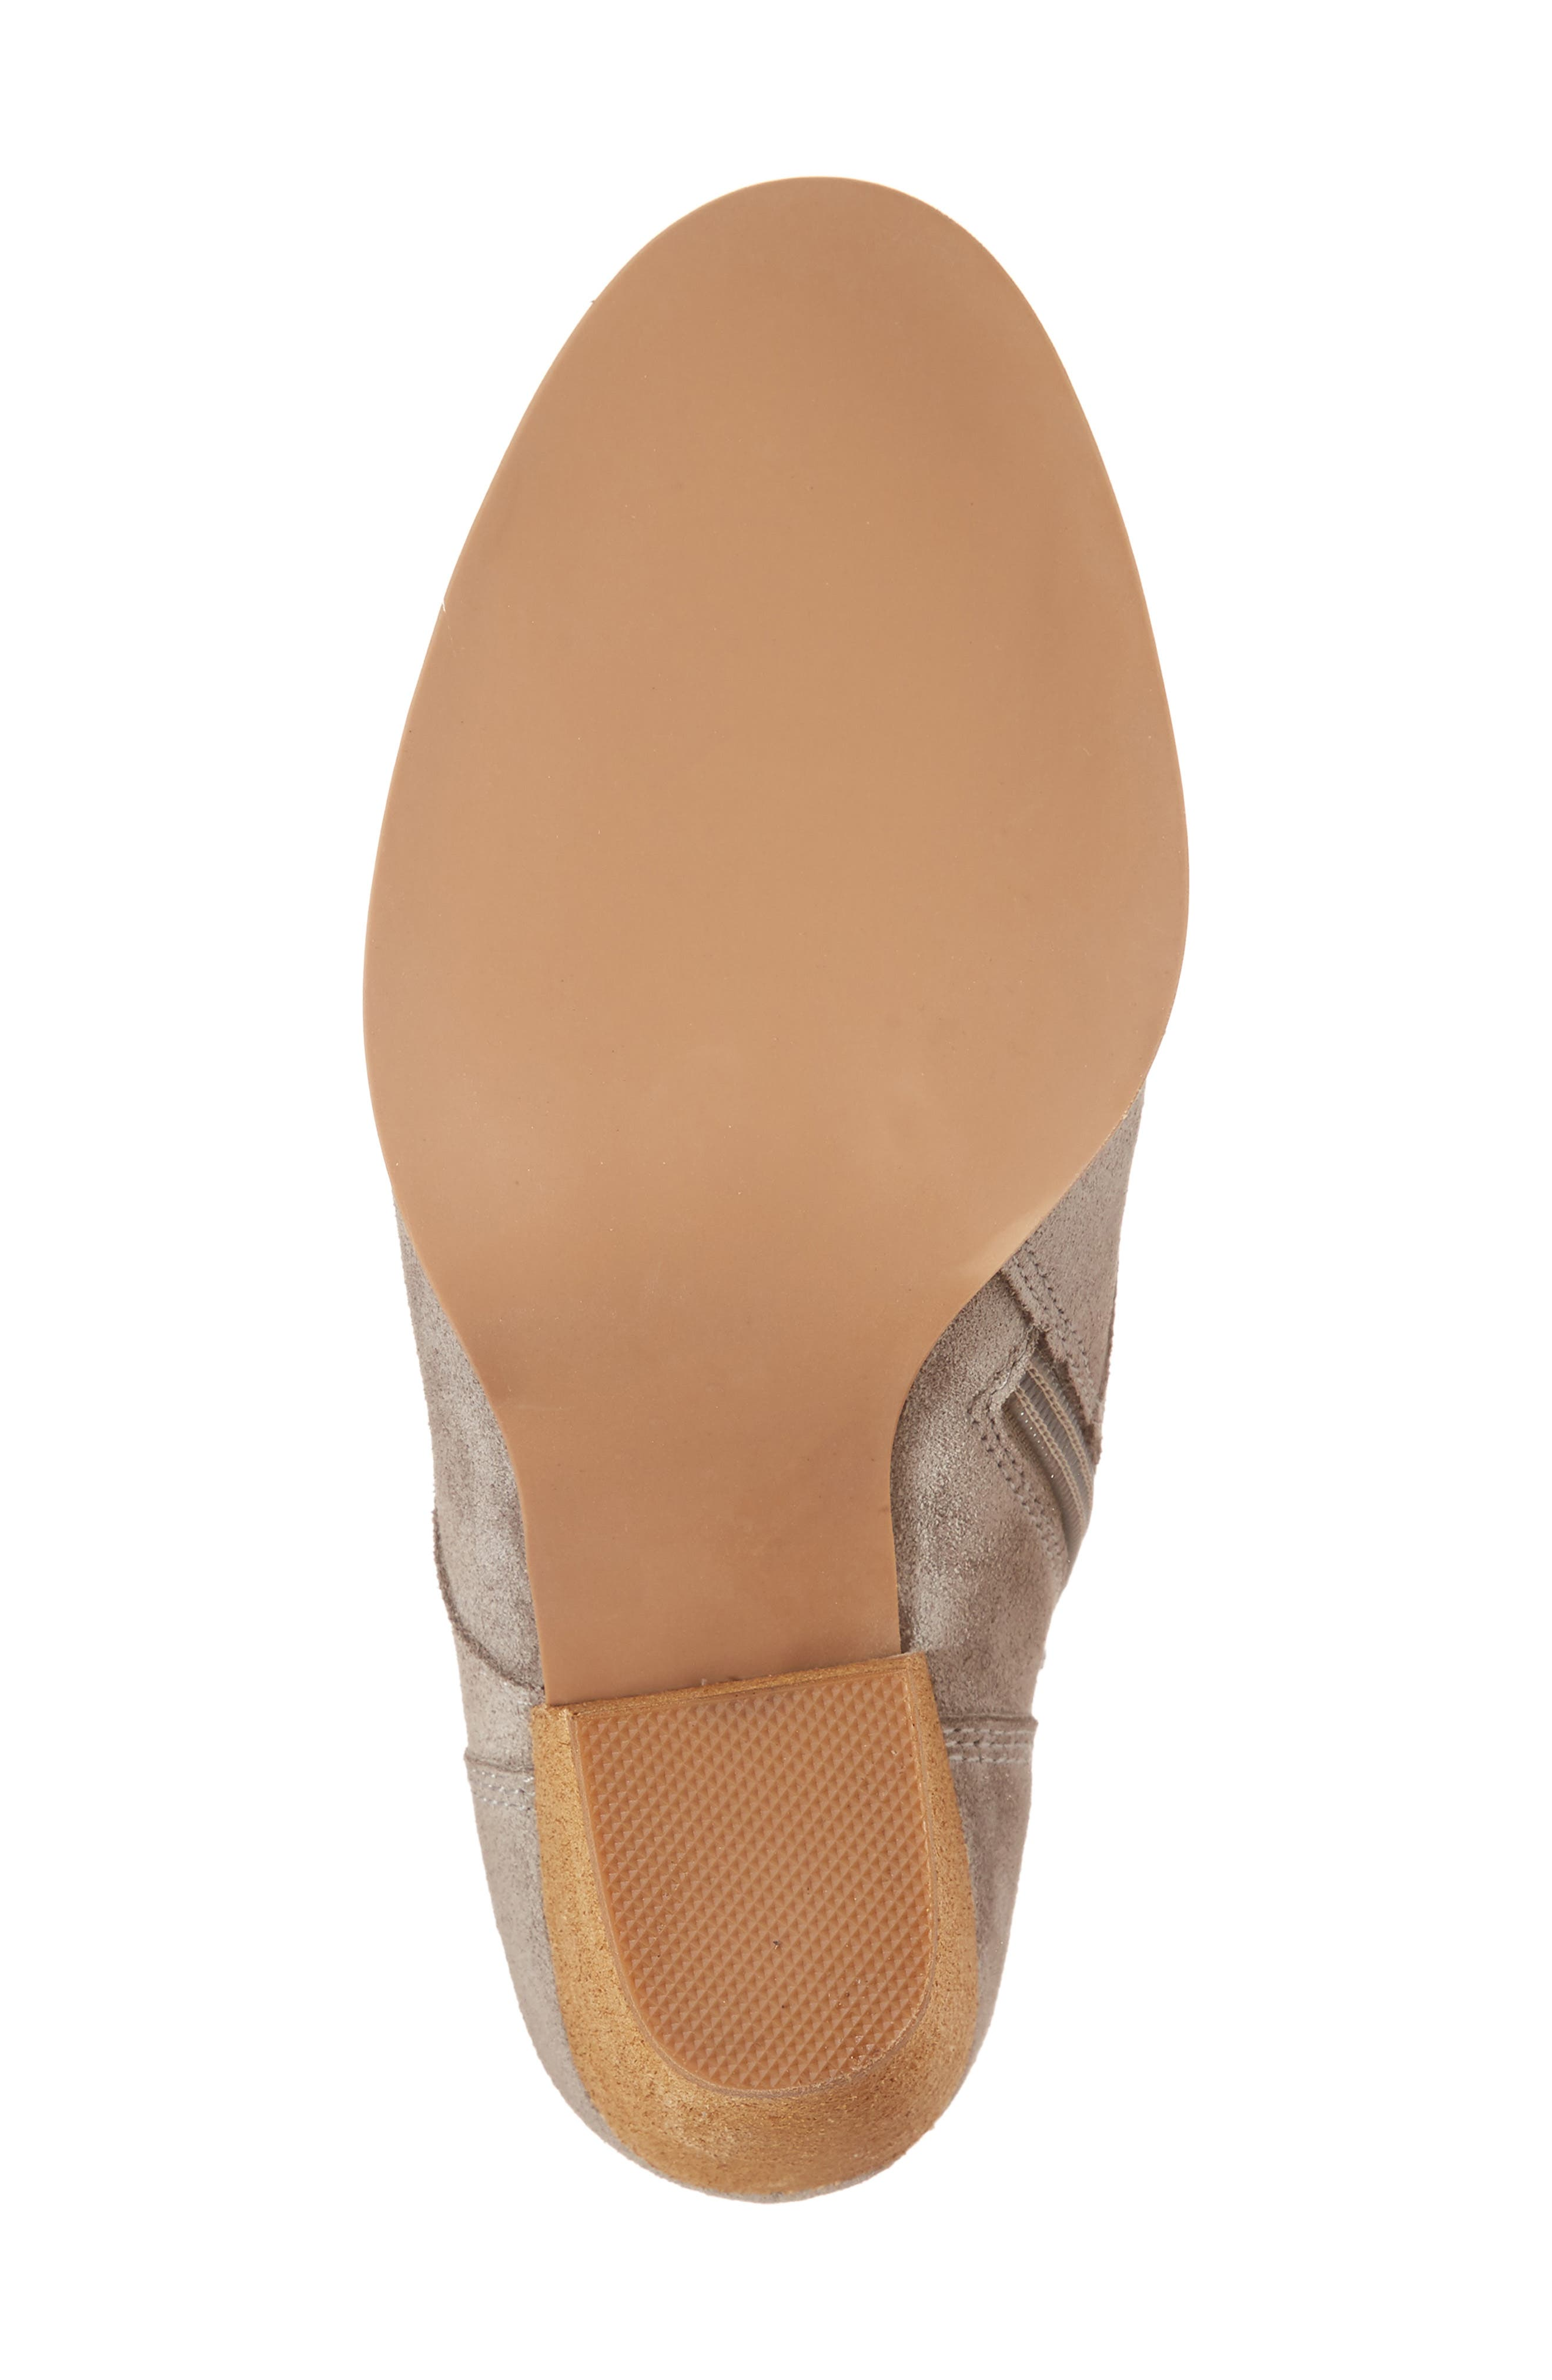 Elman Bootie,                             Alternate thumbnail 6, color,                             Taupe Suede